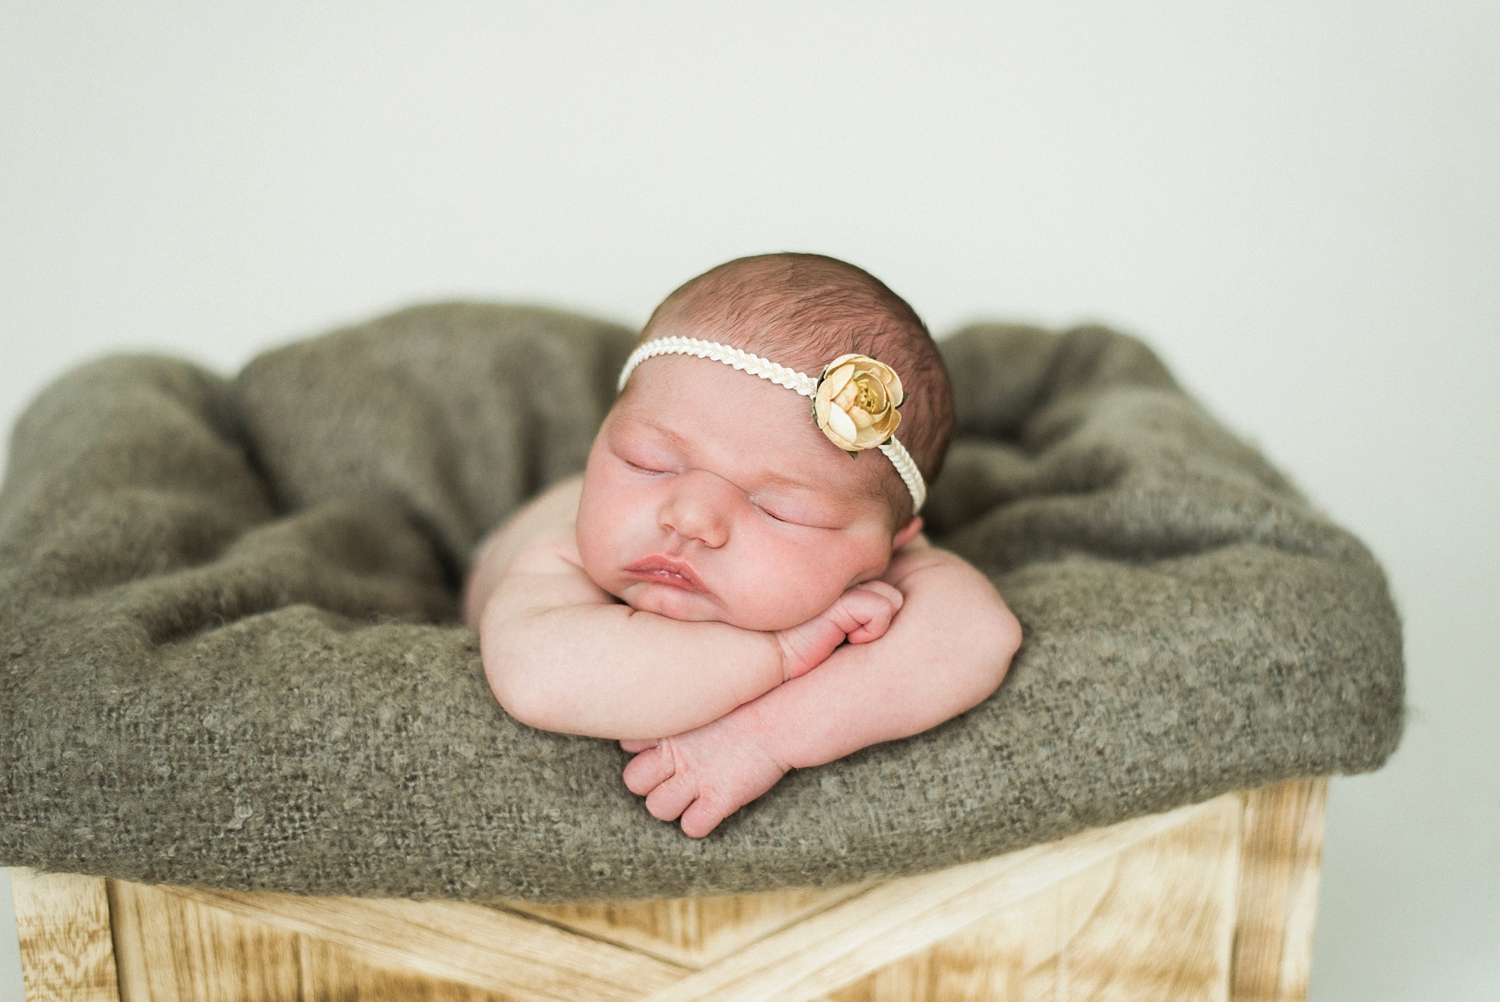 portland-newborn-photographer-baby-girl-yellow-flower-headband-02